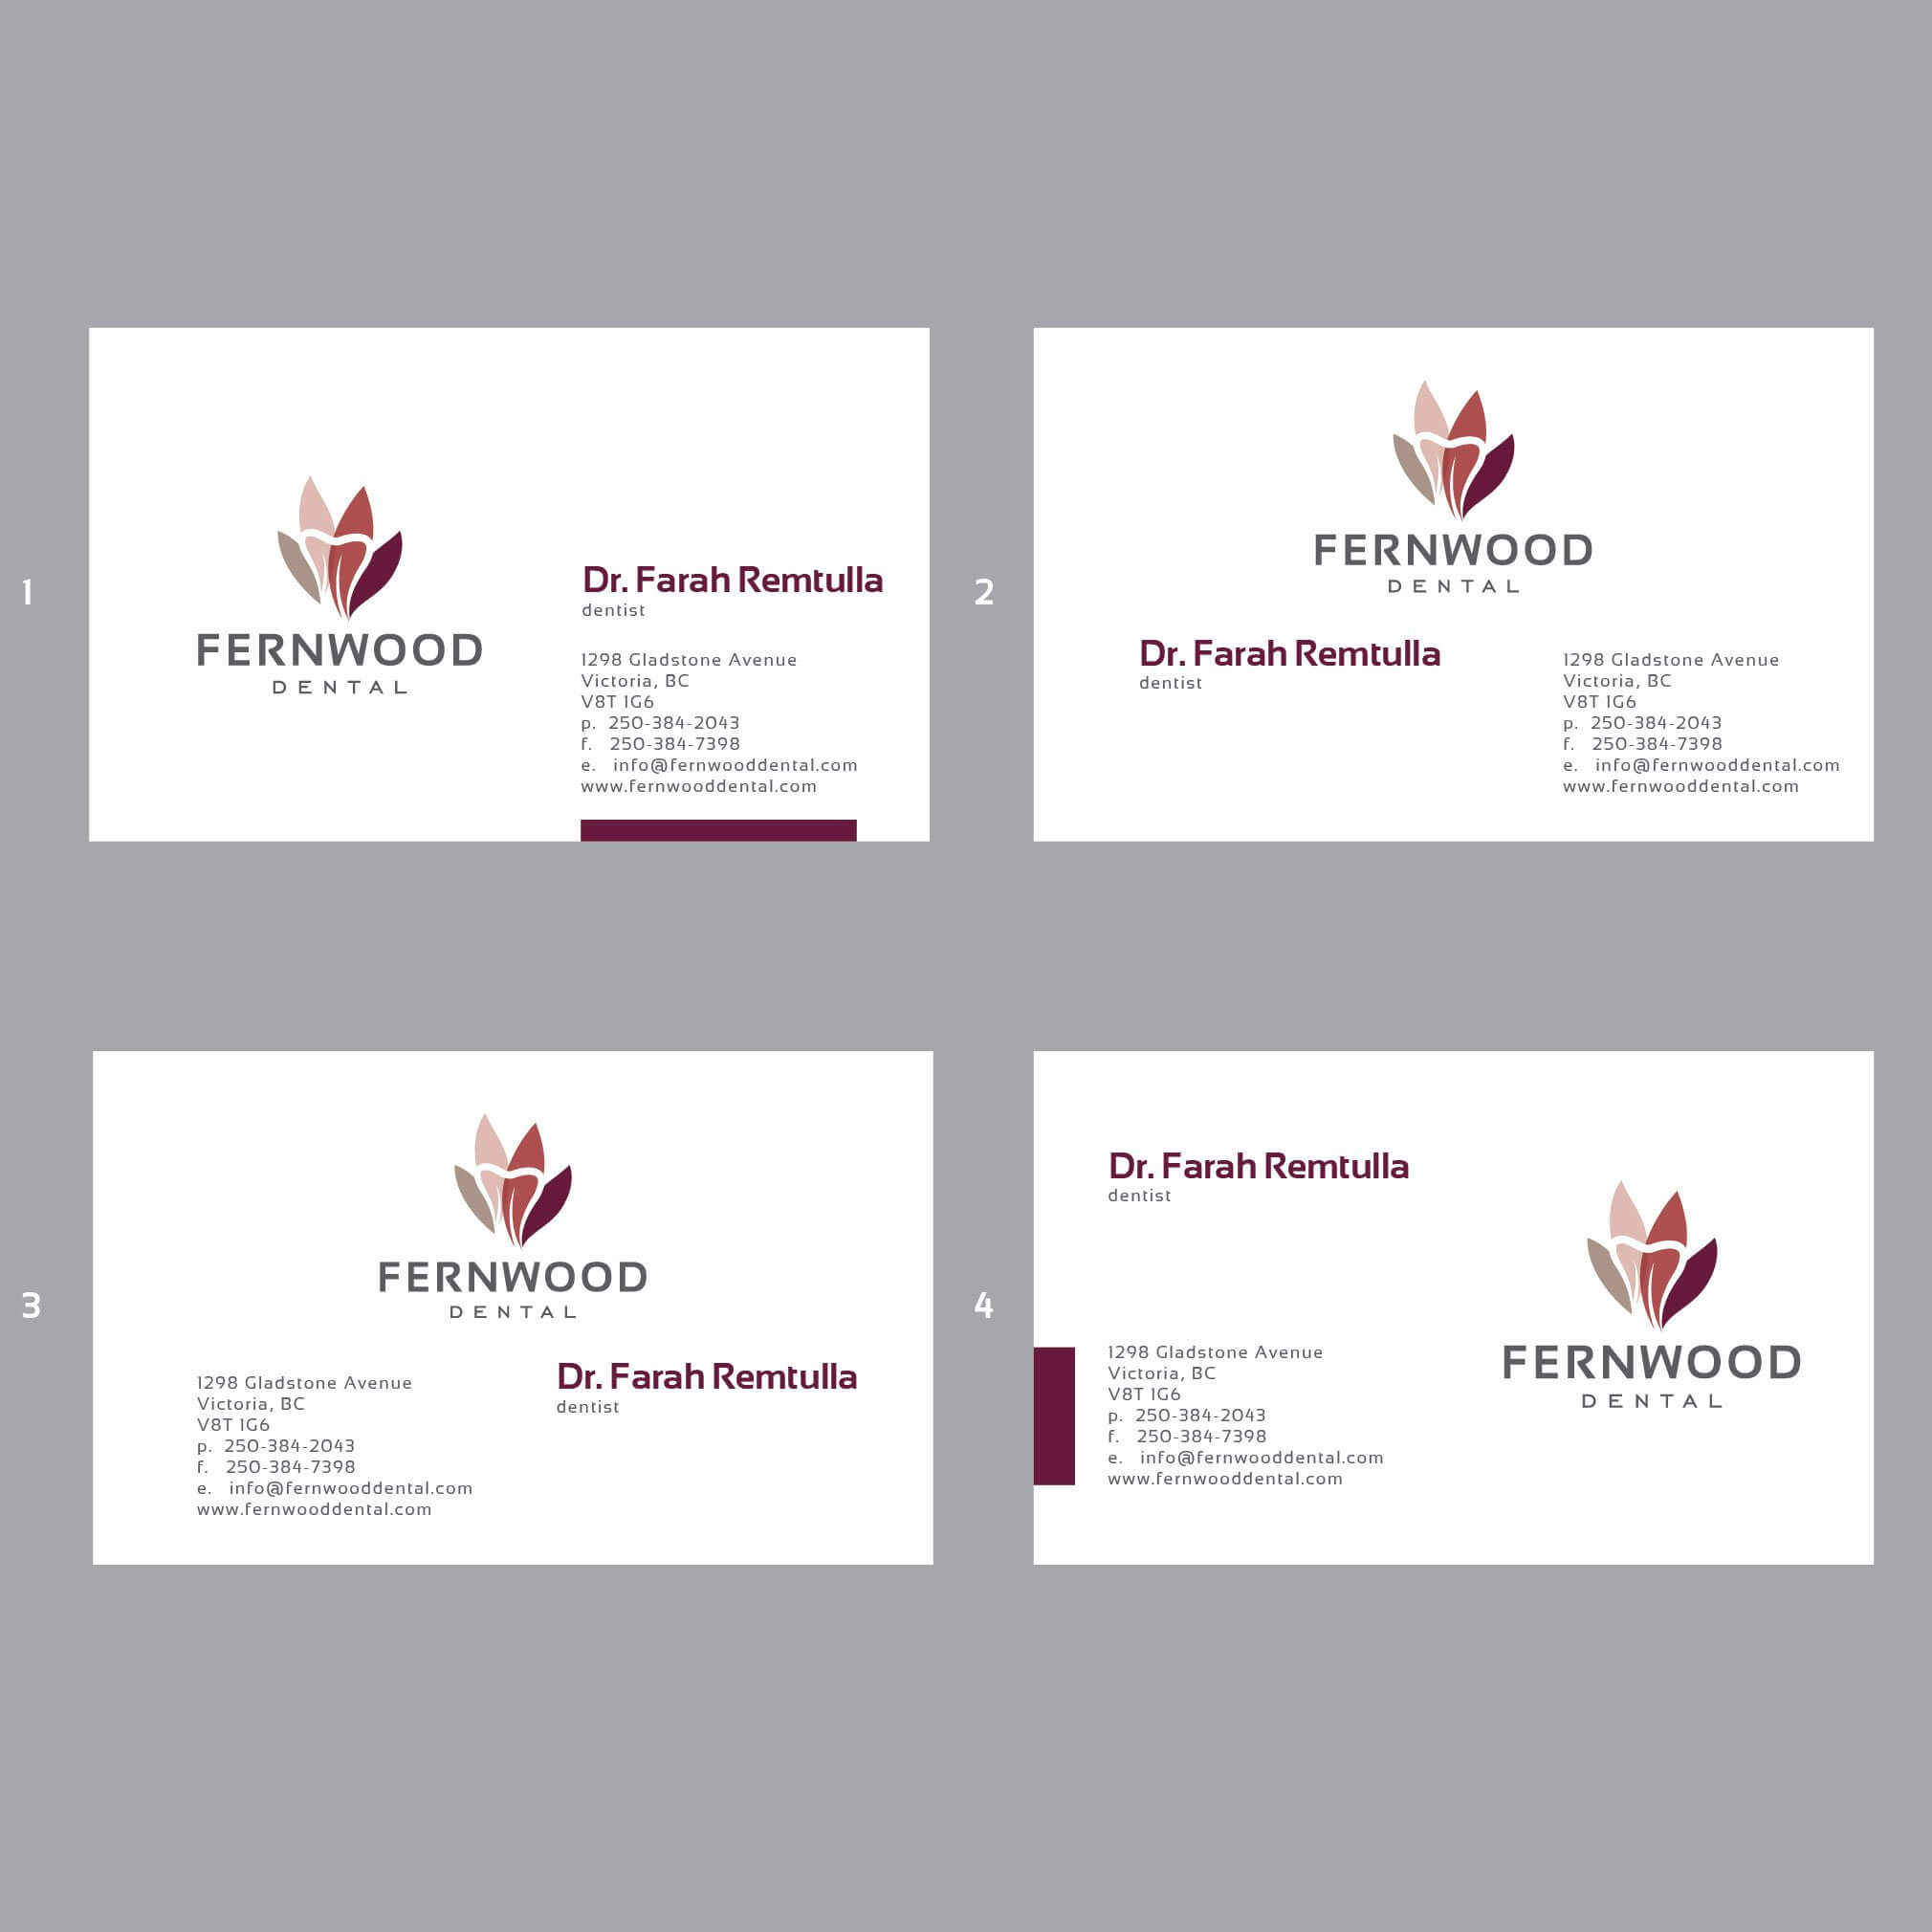 letterhead and stationery designed by otnielz